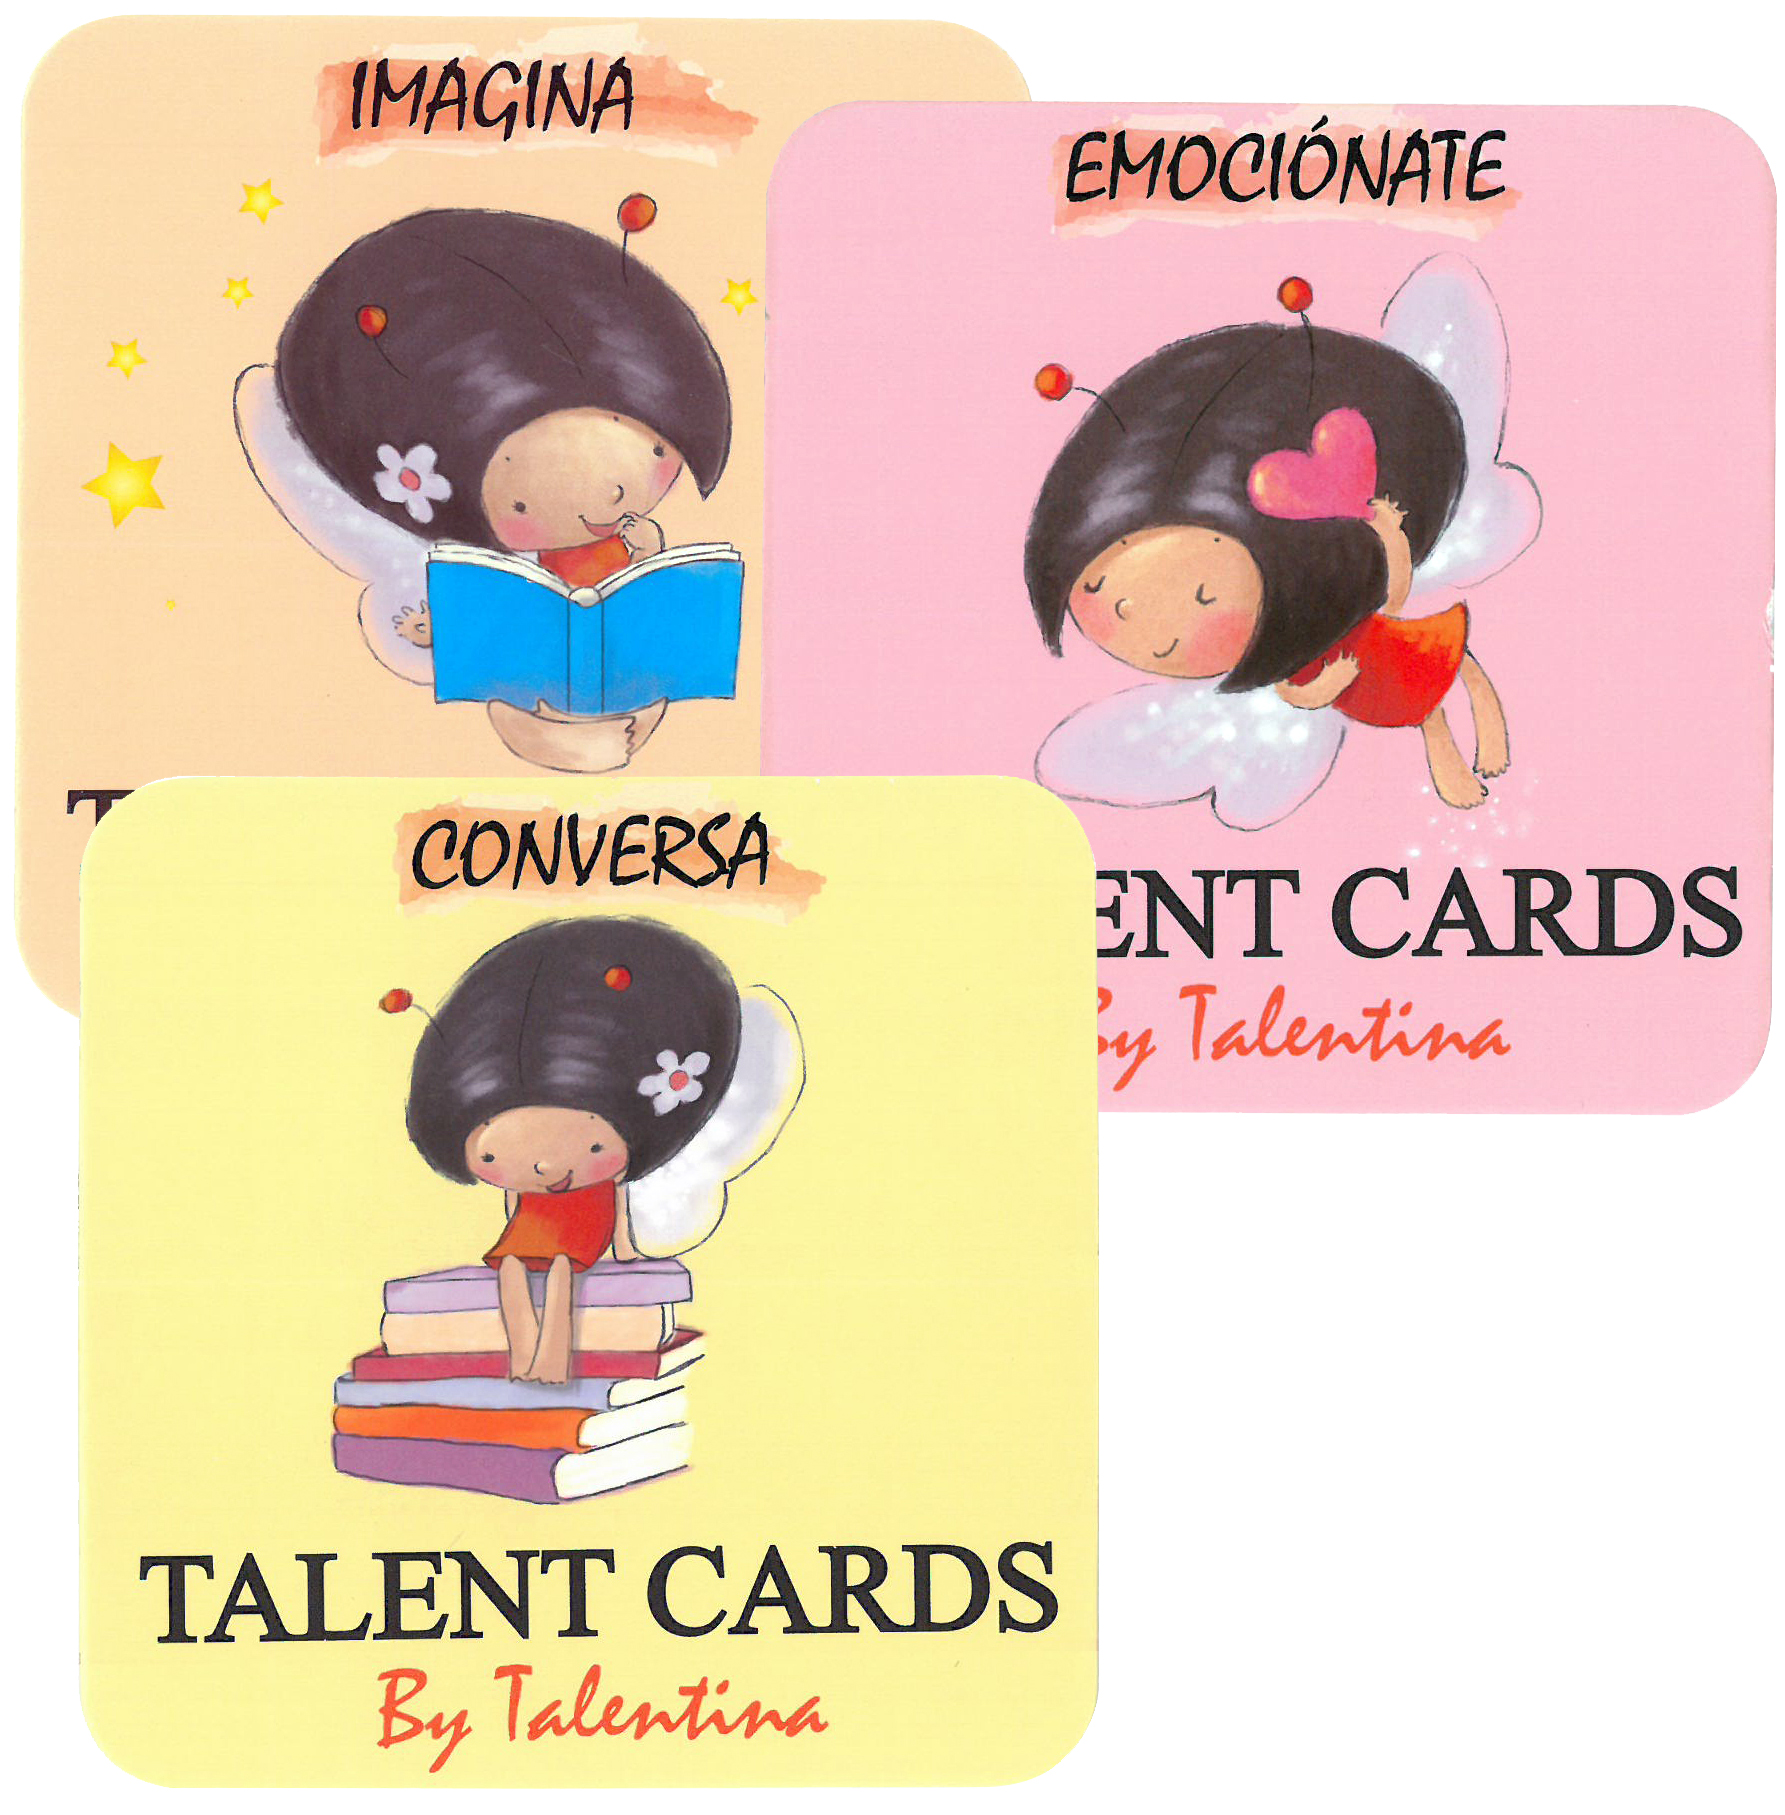 PACK IMAGINA-CONVERSA-EMOCIONATE TARJETAS TALENT CARD